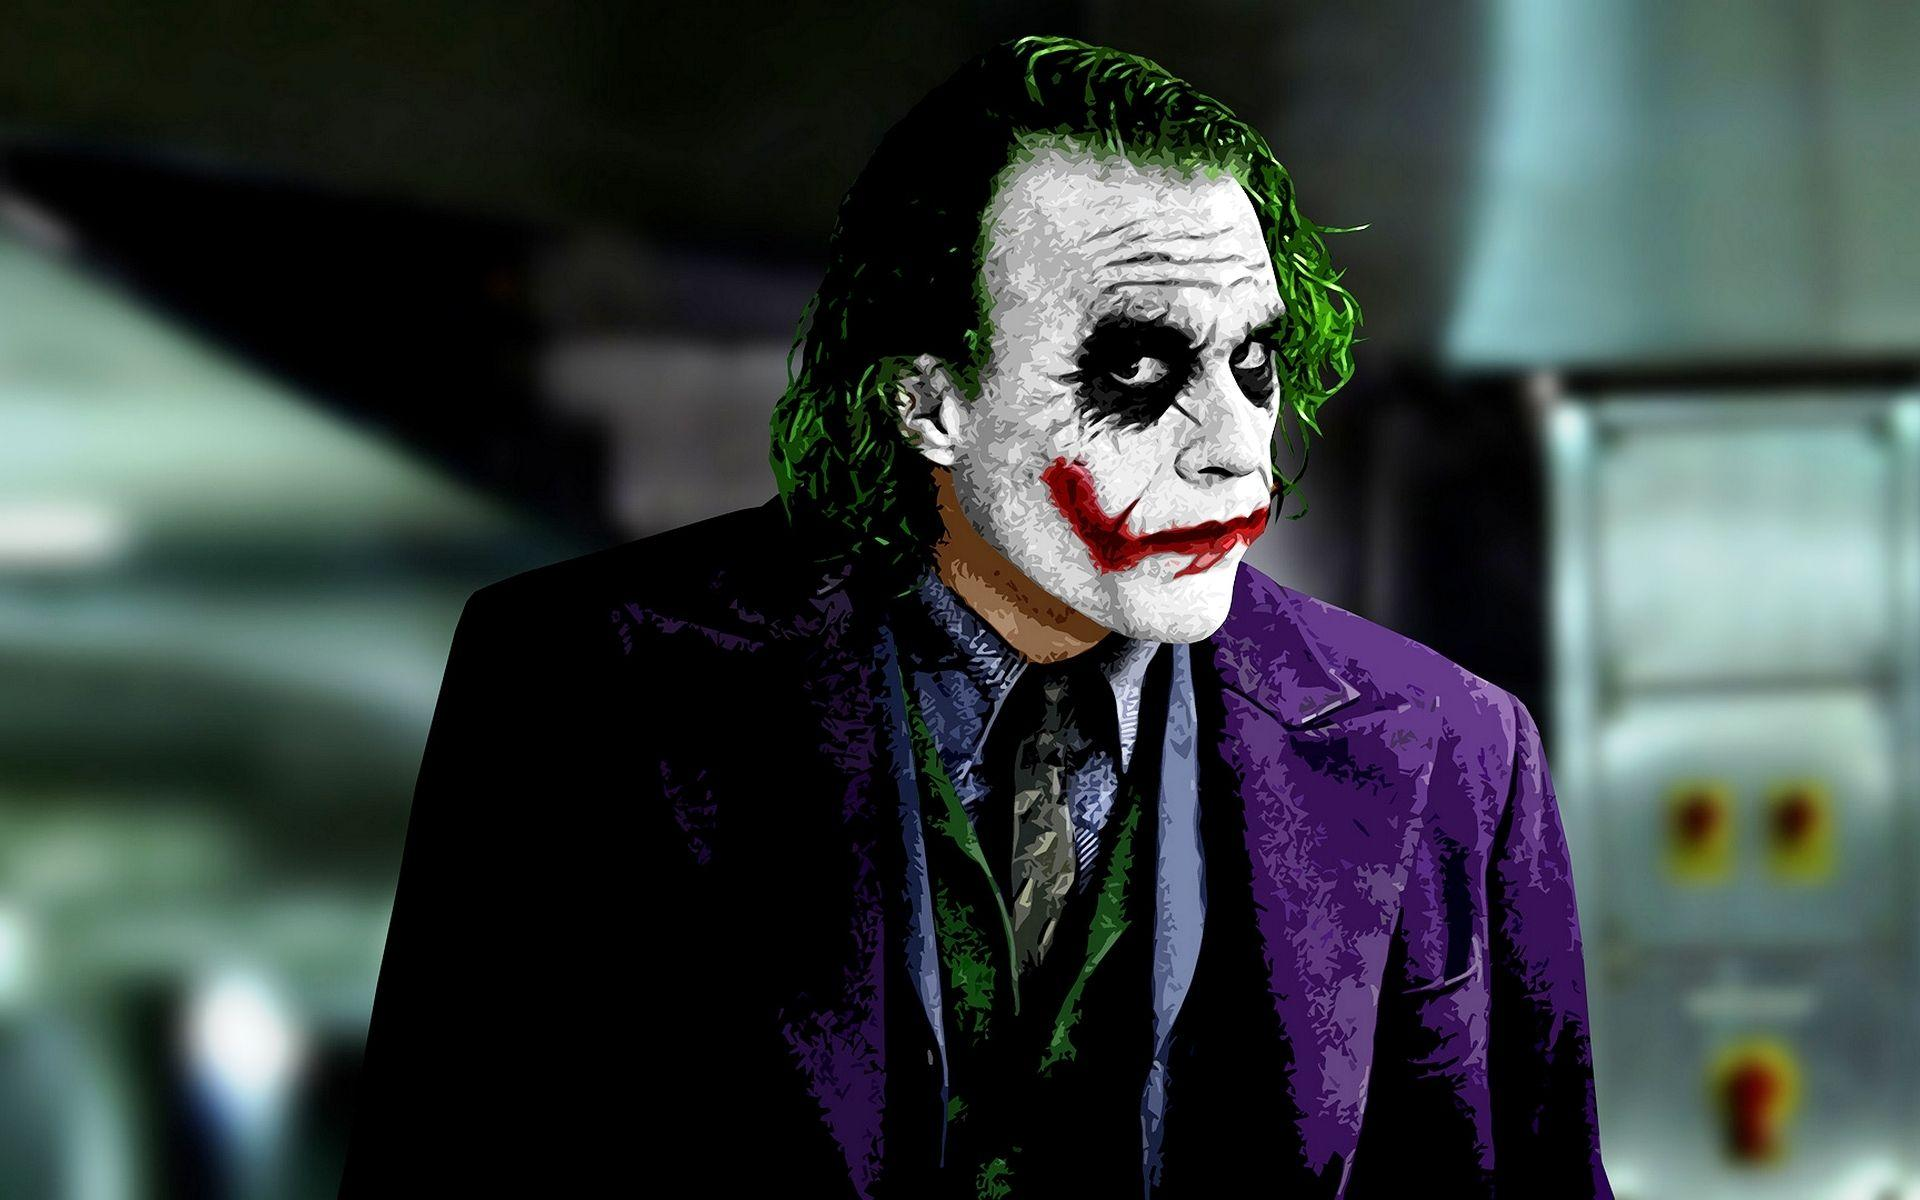 The Joker Wallpapers, Pictures, Image